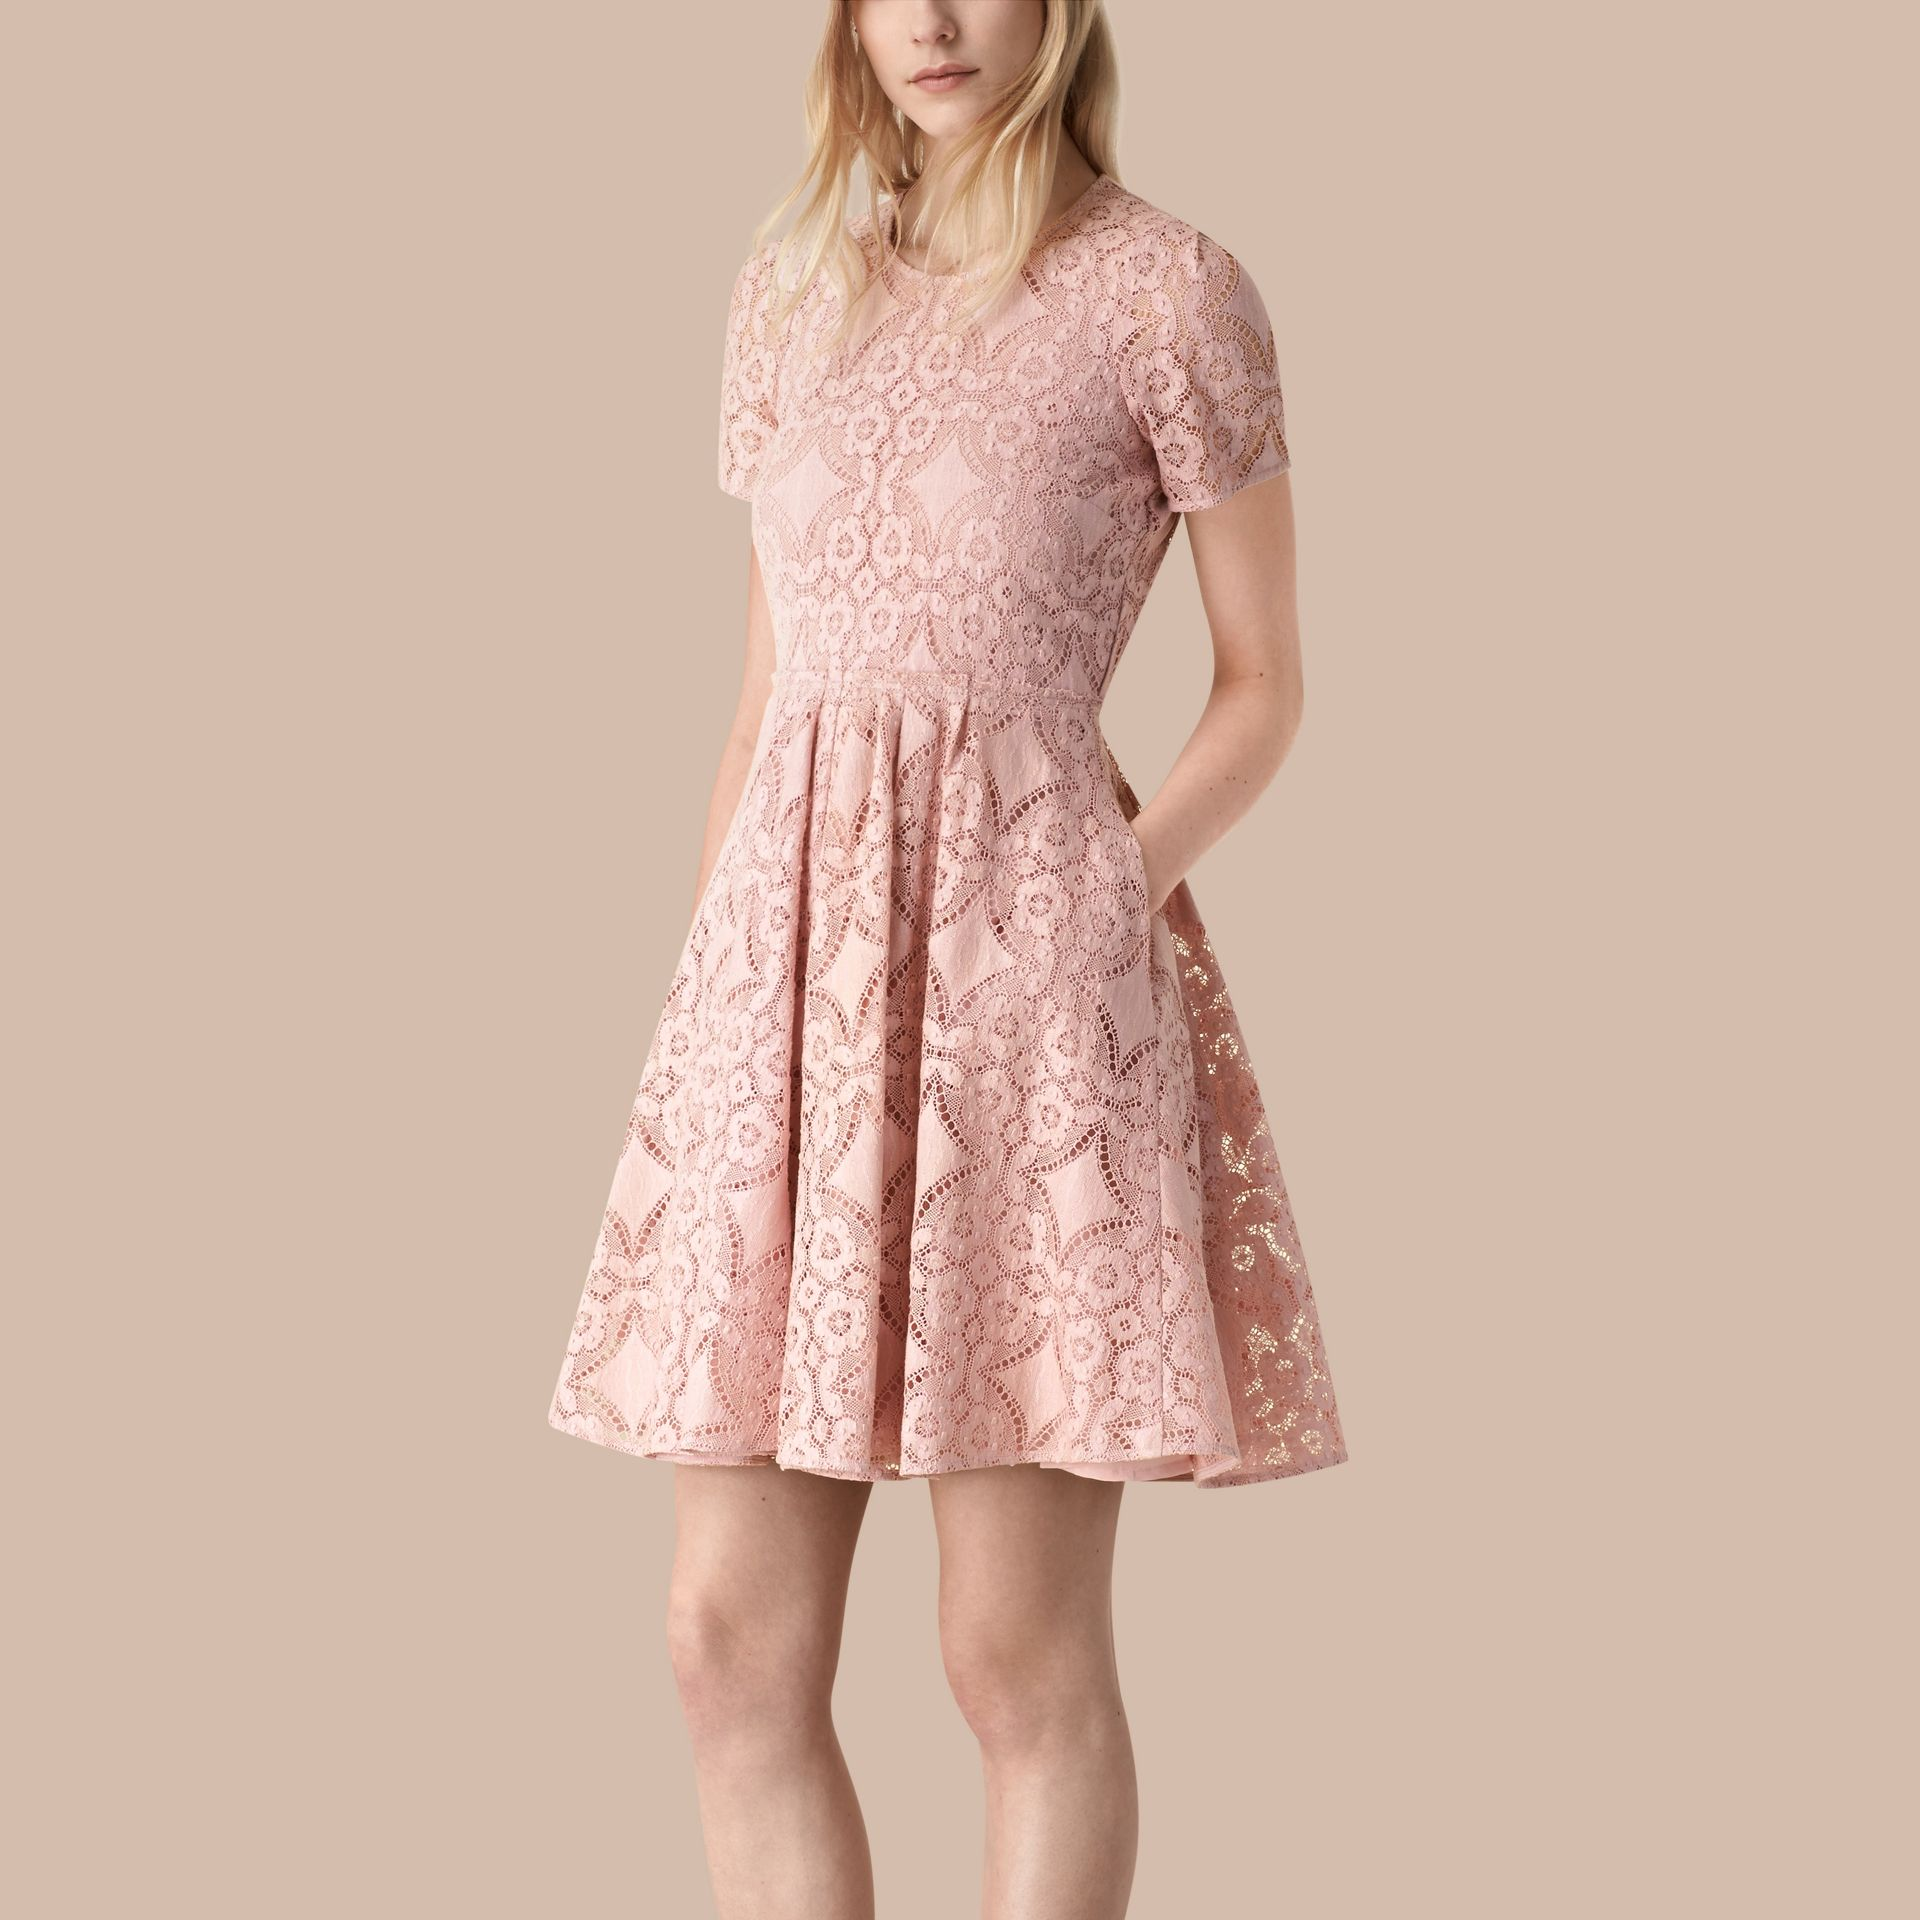 Thistle pink English Lace A-line Dress Thistle Pink - Galerie-Bild 1